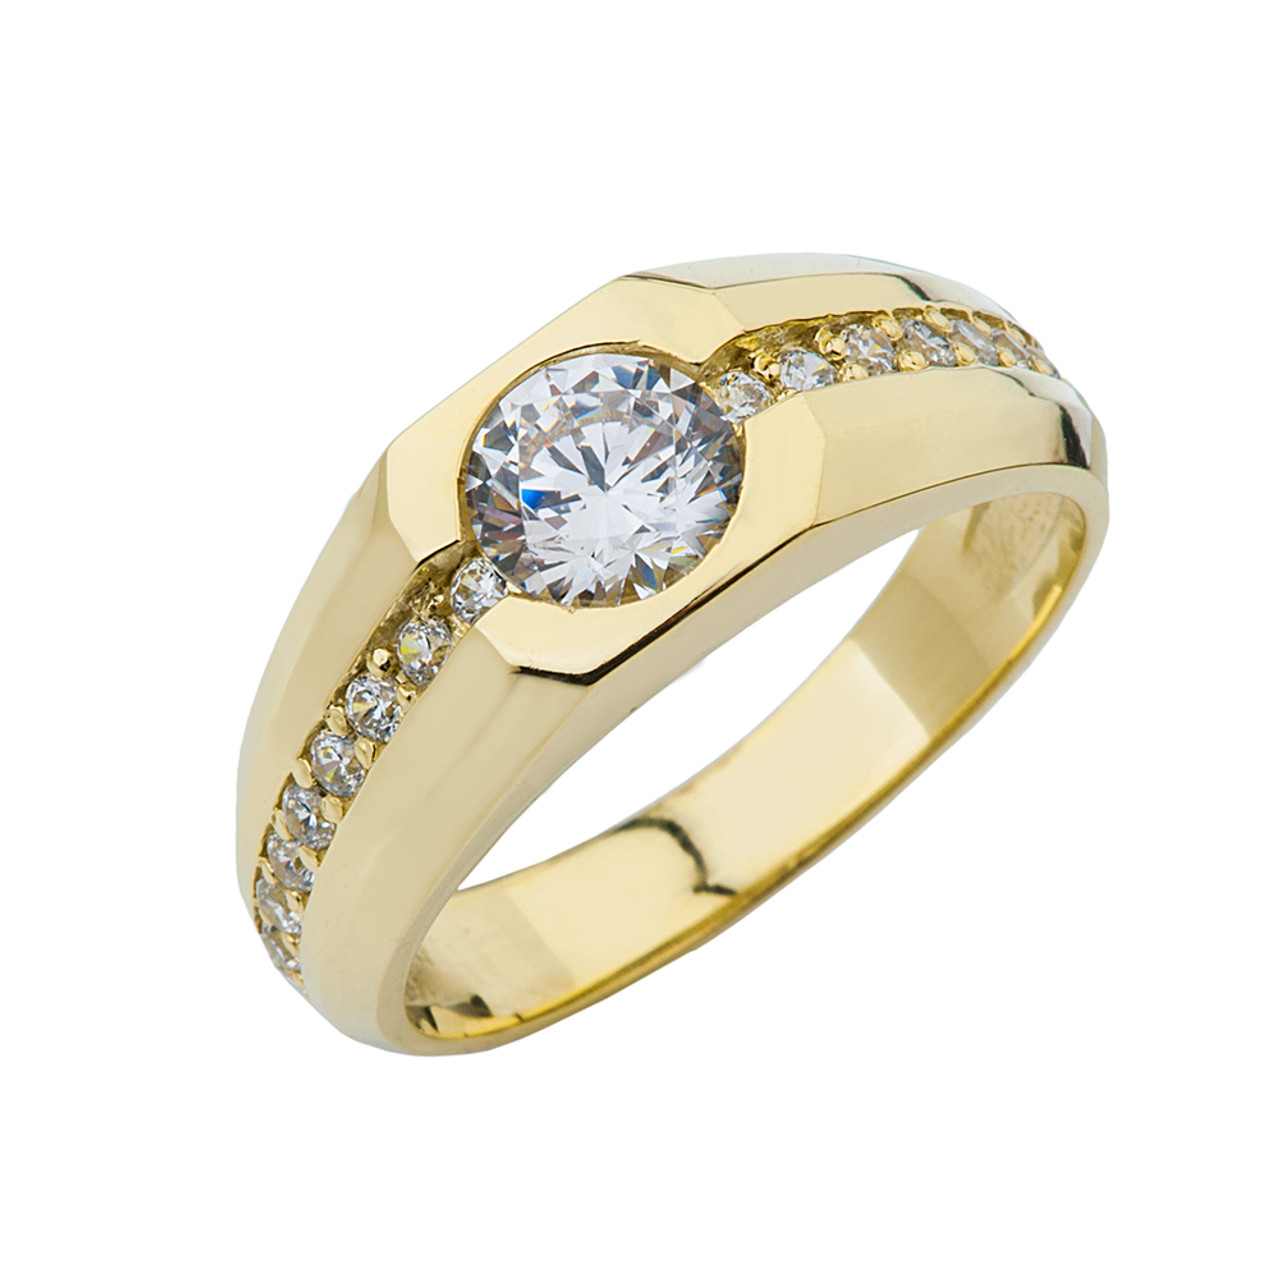 Yellow Gold Mens Ring With 1 5ct Cubic Zirconia Center Stone